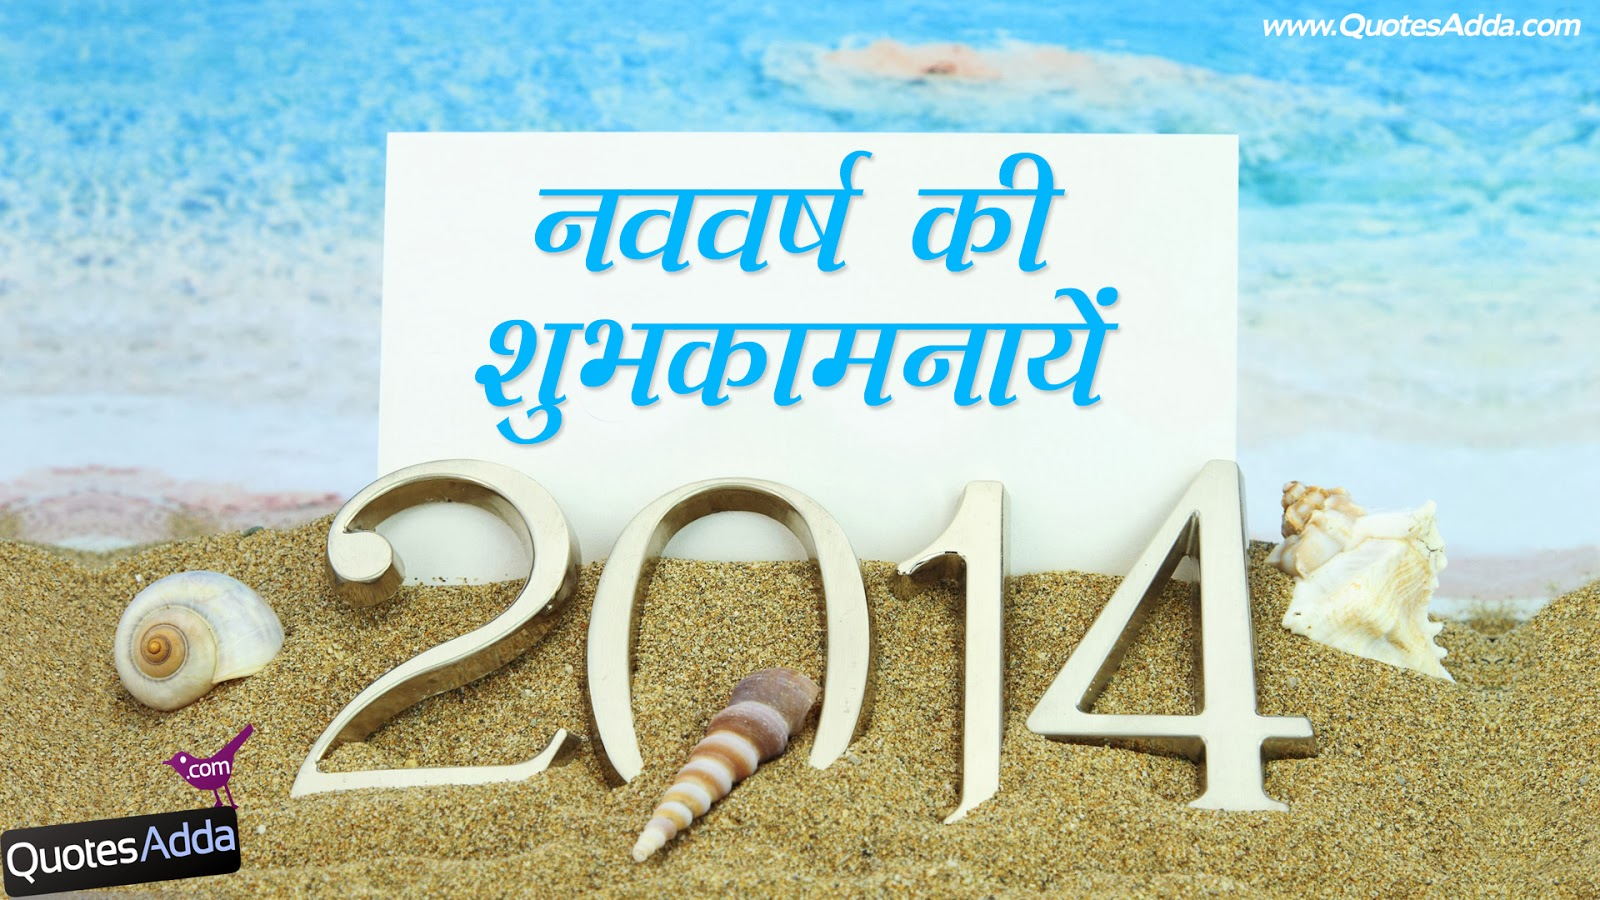 Happy New Year Telugu Designs  2014 Happy New Year Telugu Quotes